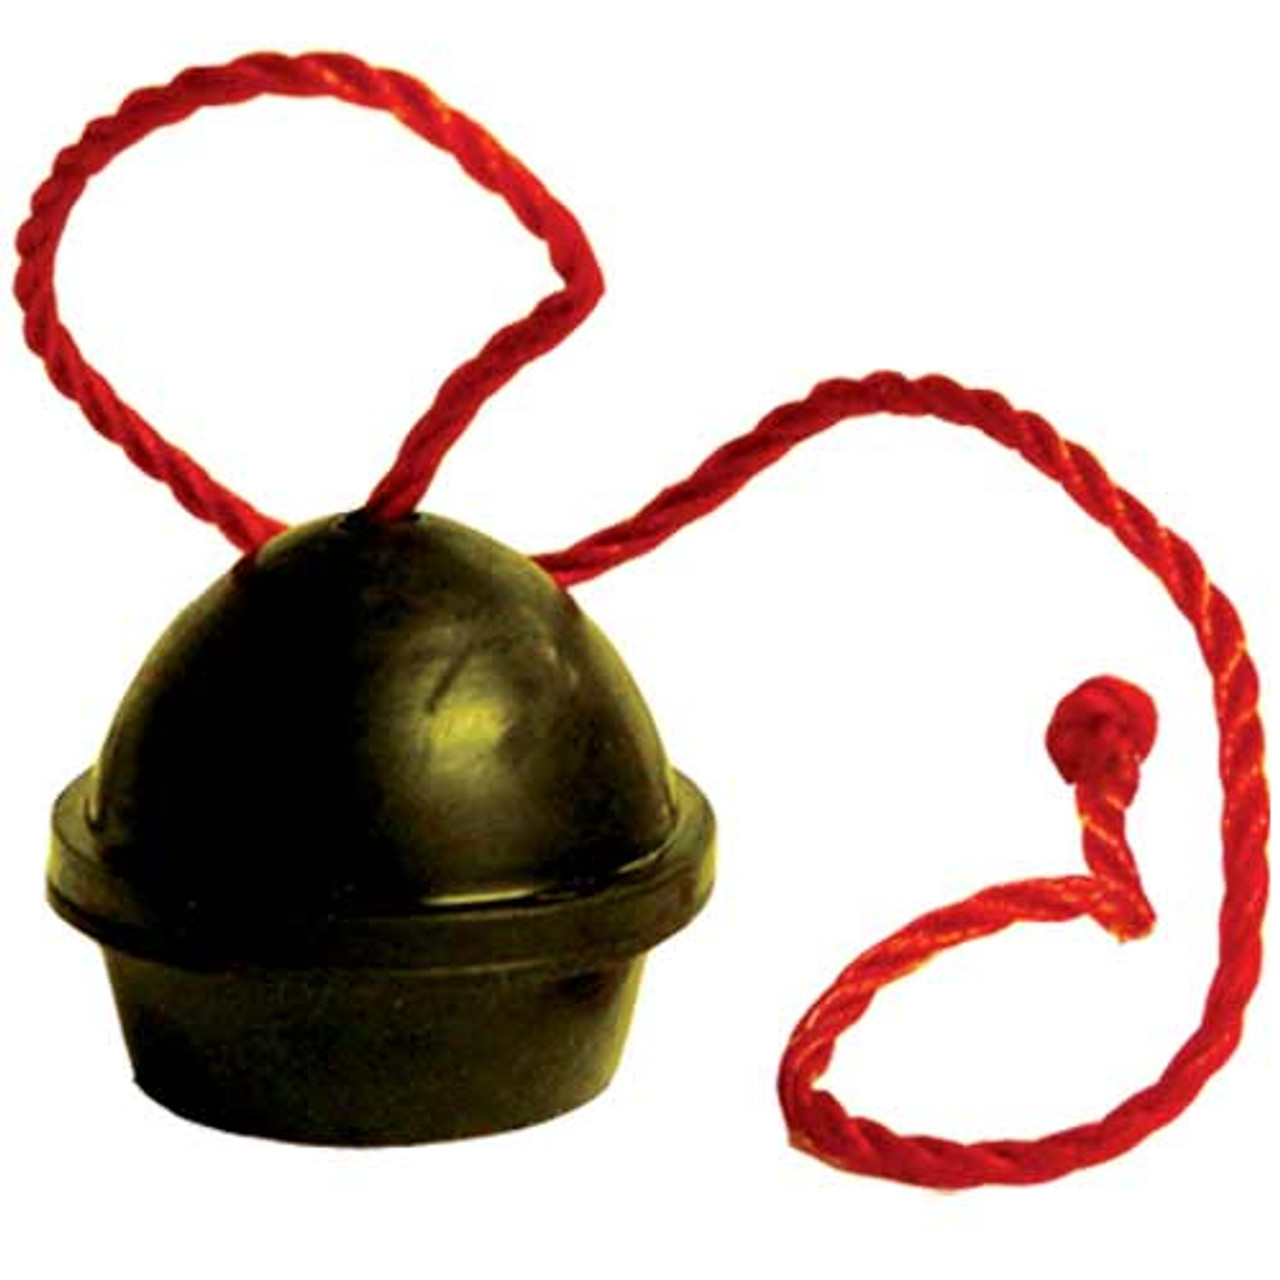 Black Rubber Chalk Holder on a String